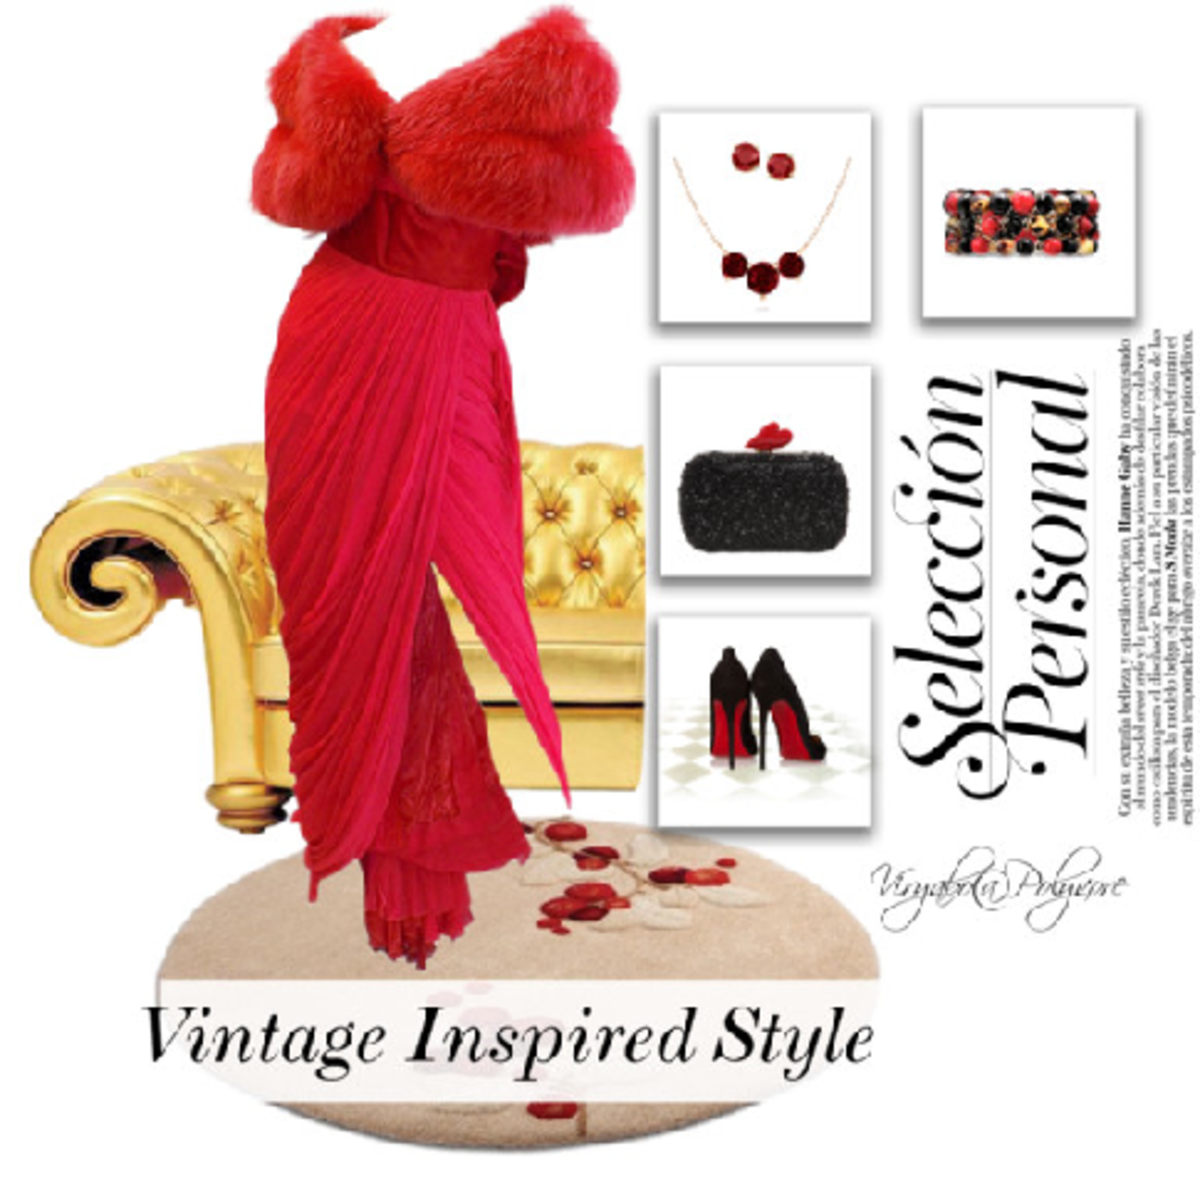 Chic Old Hollywood dress with faux fur details an the characteristic red color. Fashion accessories include stiletto heels, clutch handbag, and costume jewelry. A Vintage Inspired Style